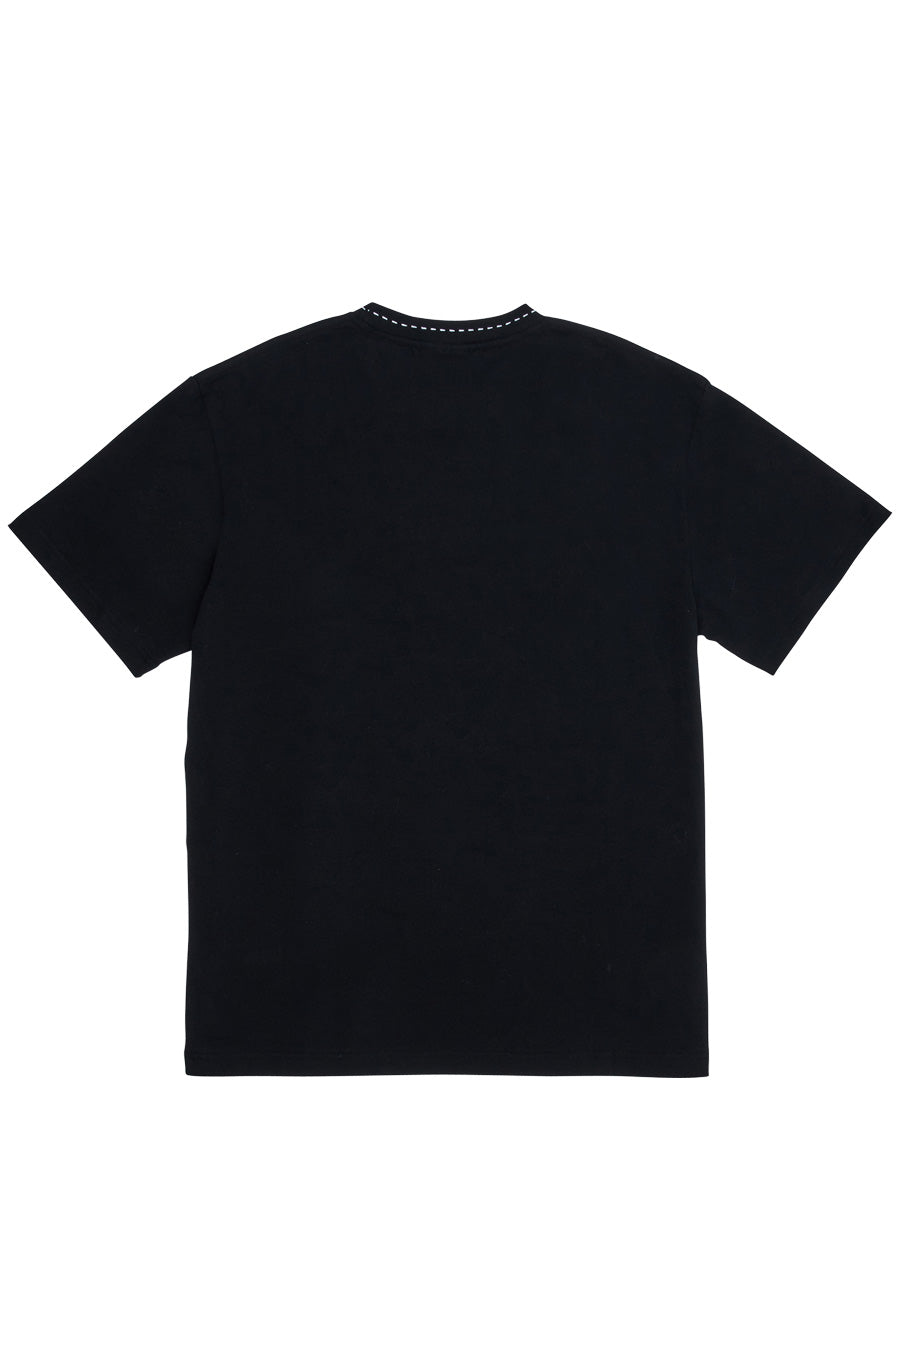 "Pleasures - Black ""Cut Here"" Heavyweight T-Shirt"